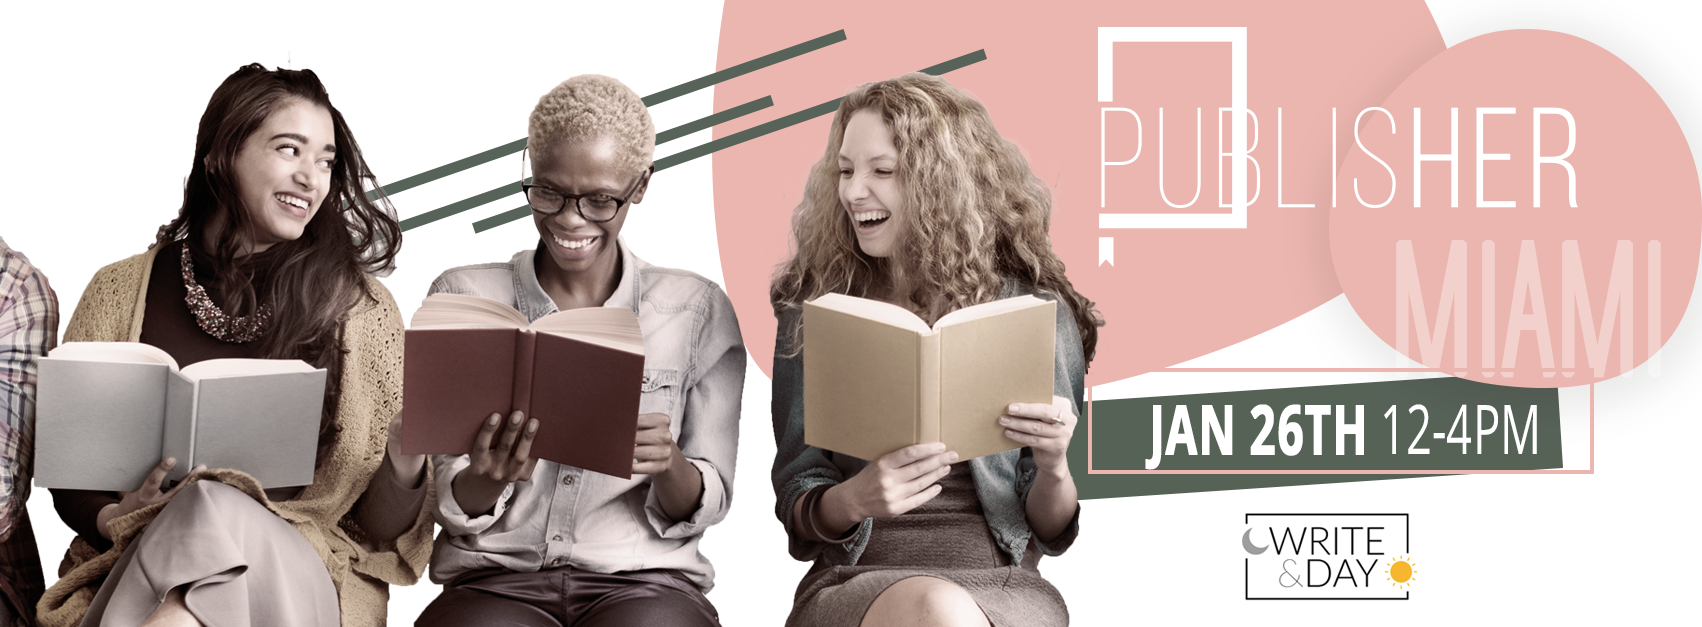 PublisHER   Book Fair for Self-Published Women Authors